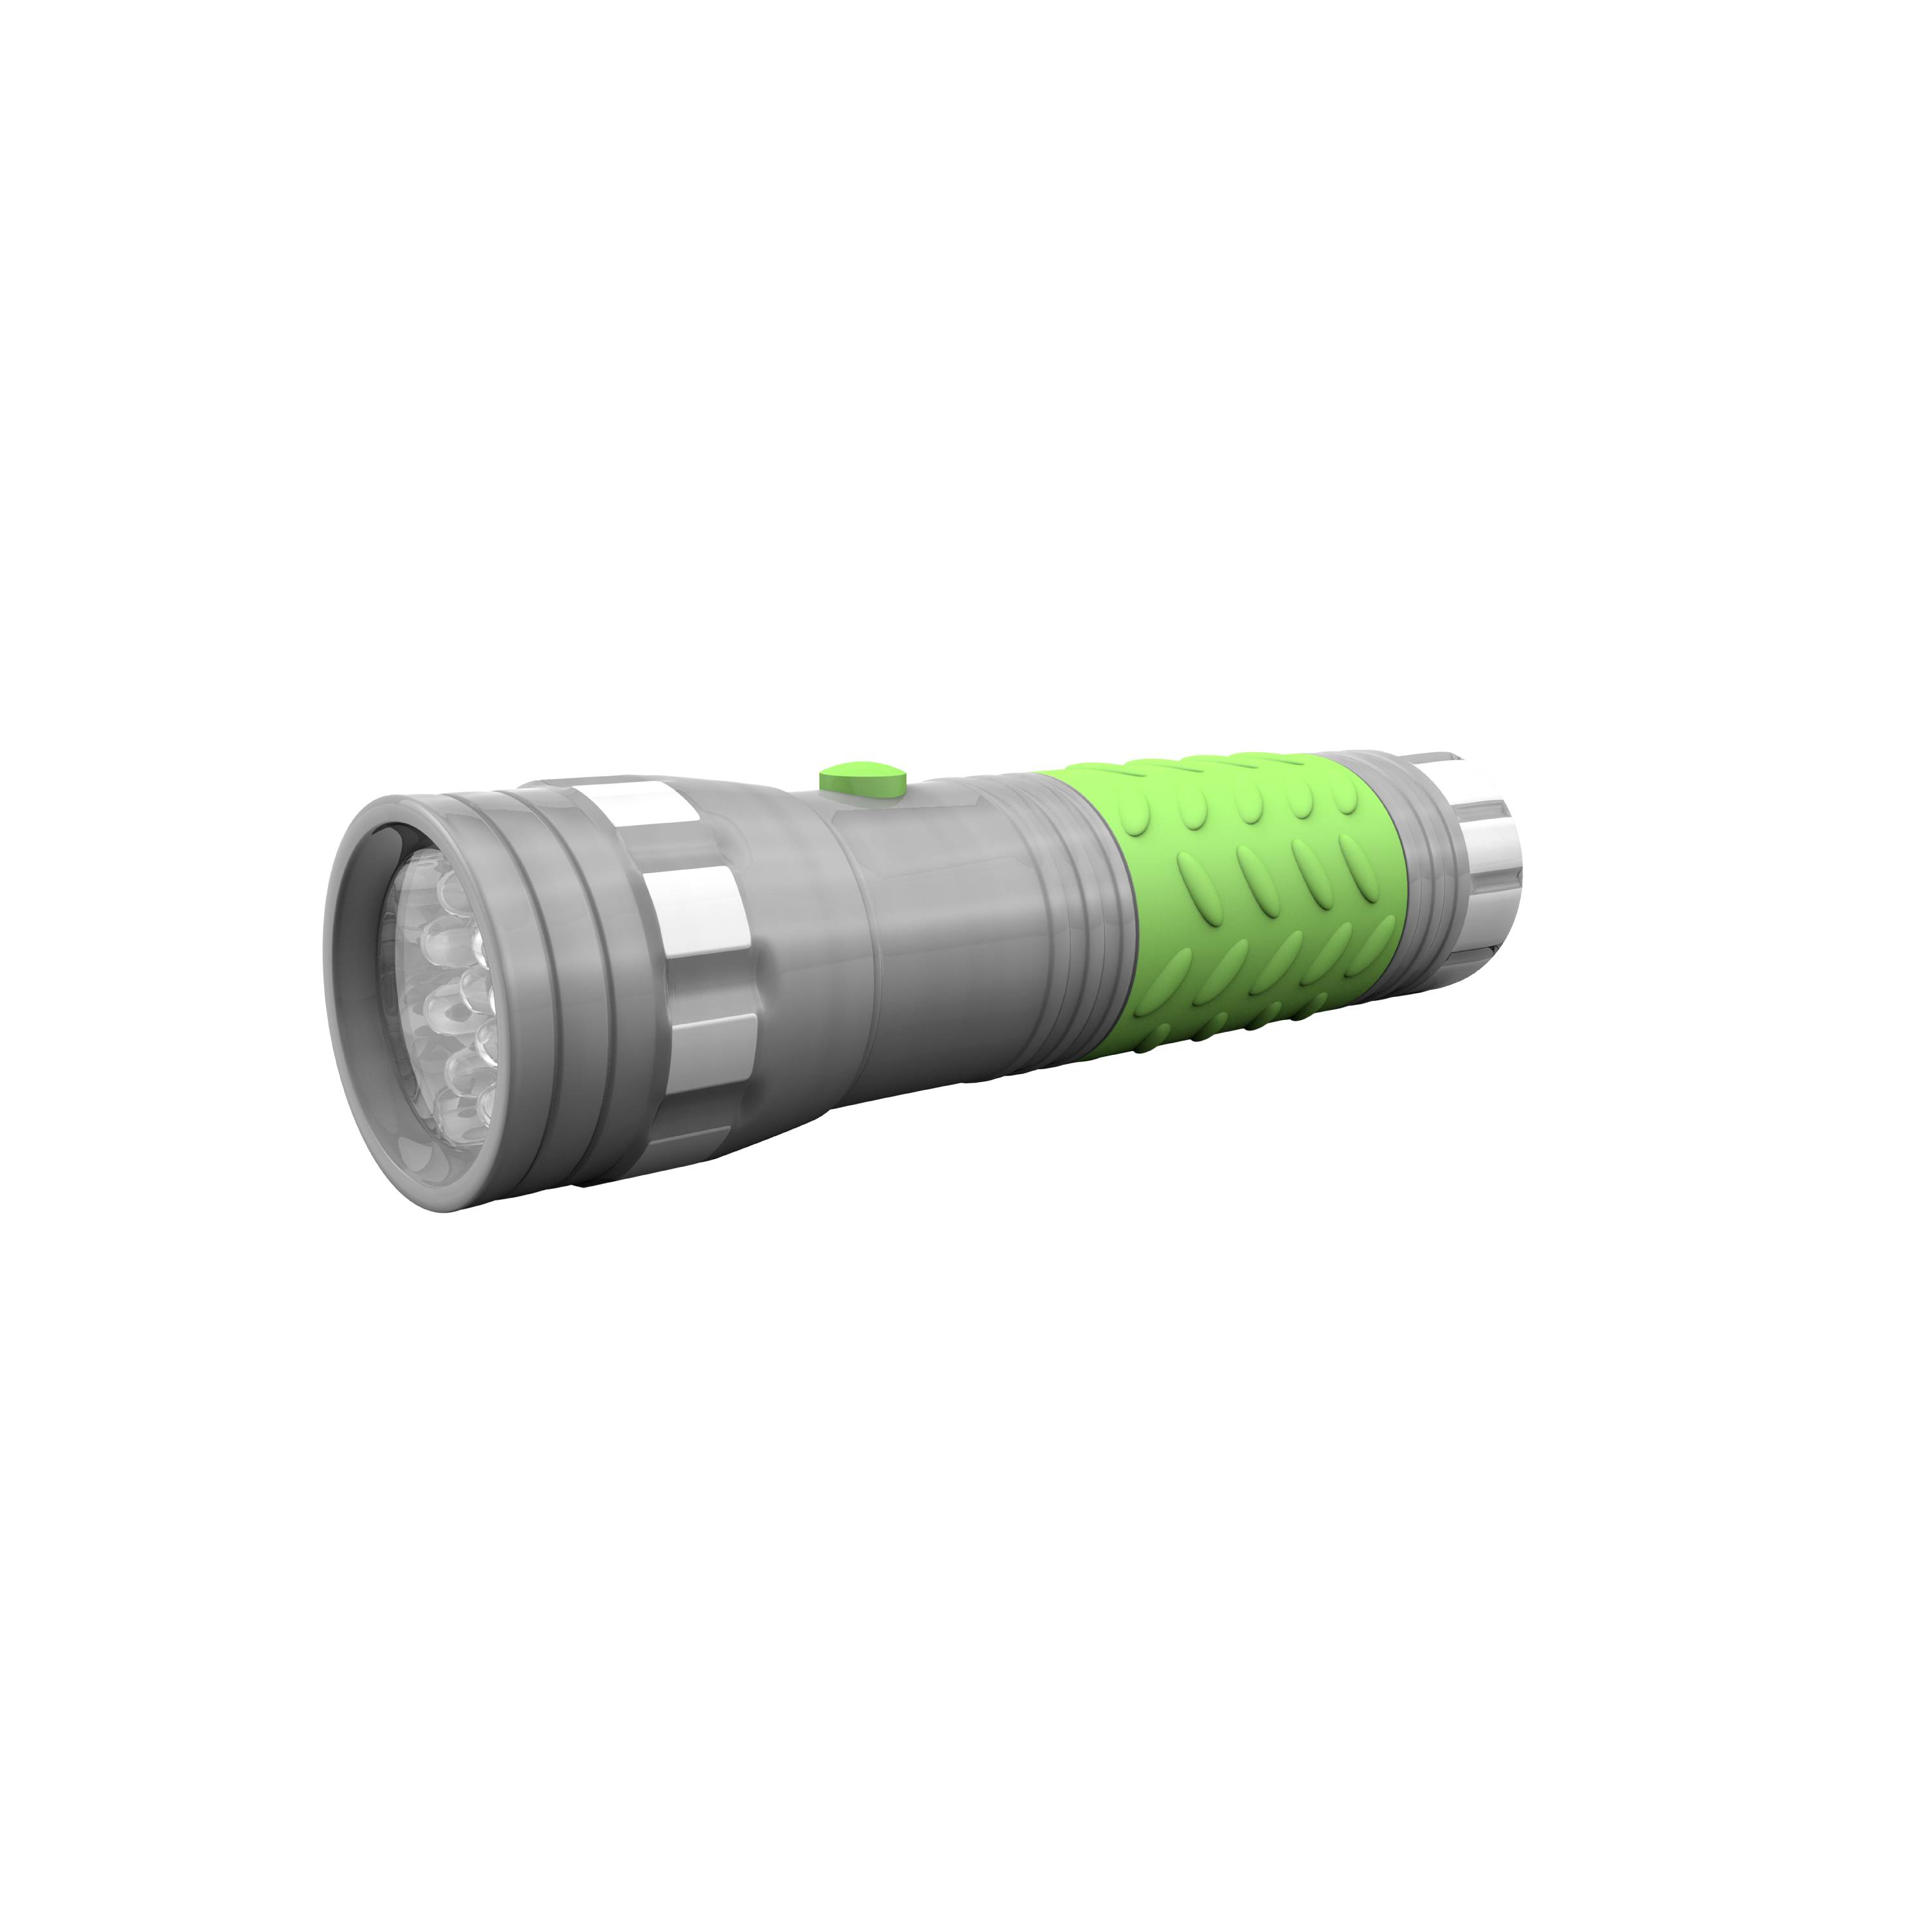 Rayovac Brite Essentials 3AAA LED Glow In The Dark Flashlight (colors vary: green, pink, blue, gray) BRS14LED-BA by Rayovac